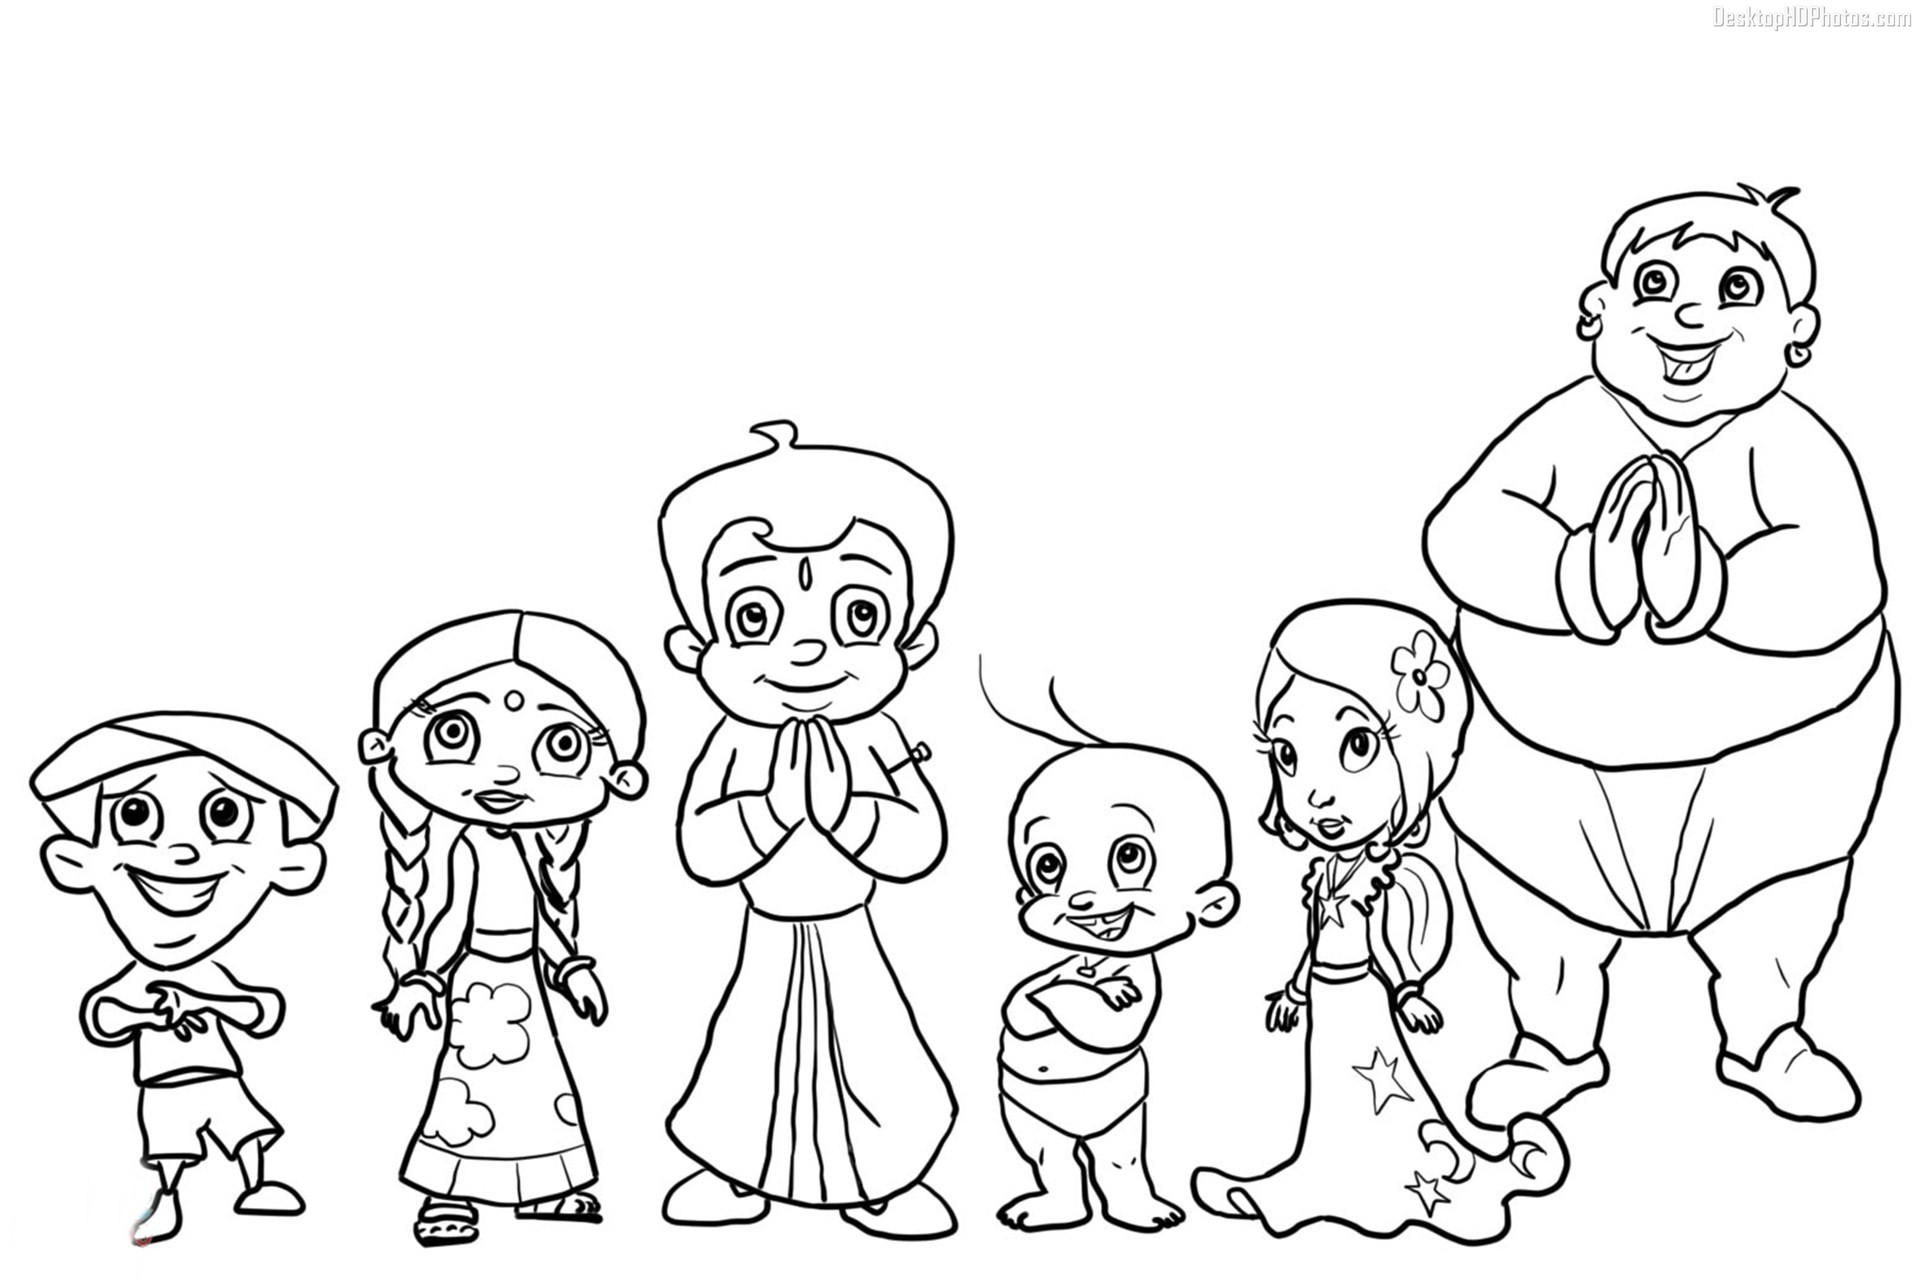 Chota Bheem Coloring pages to Print